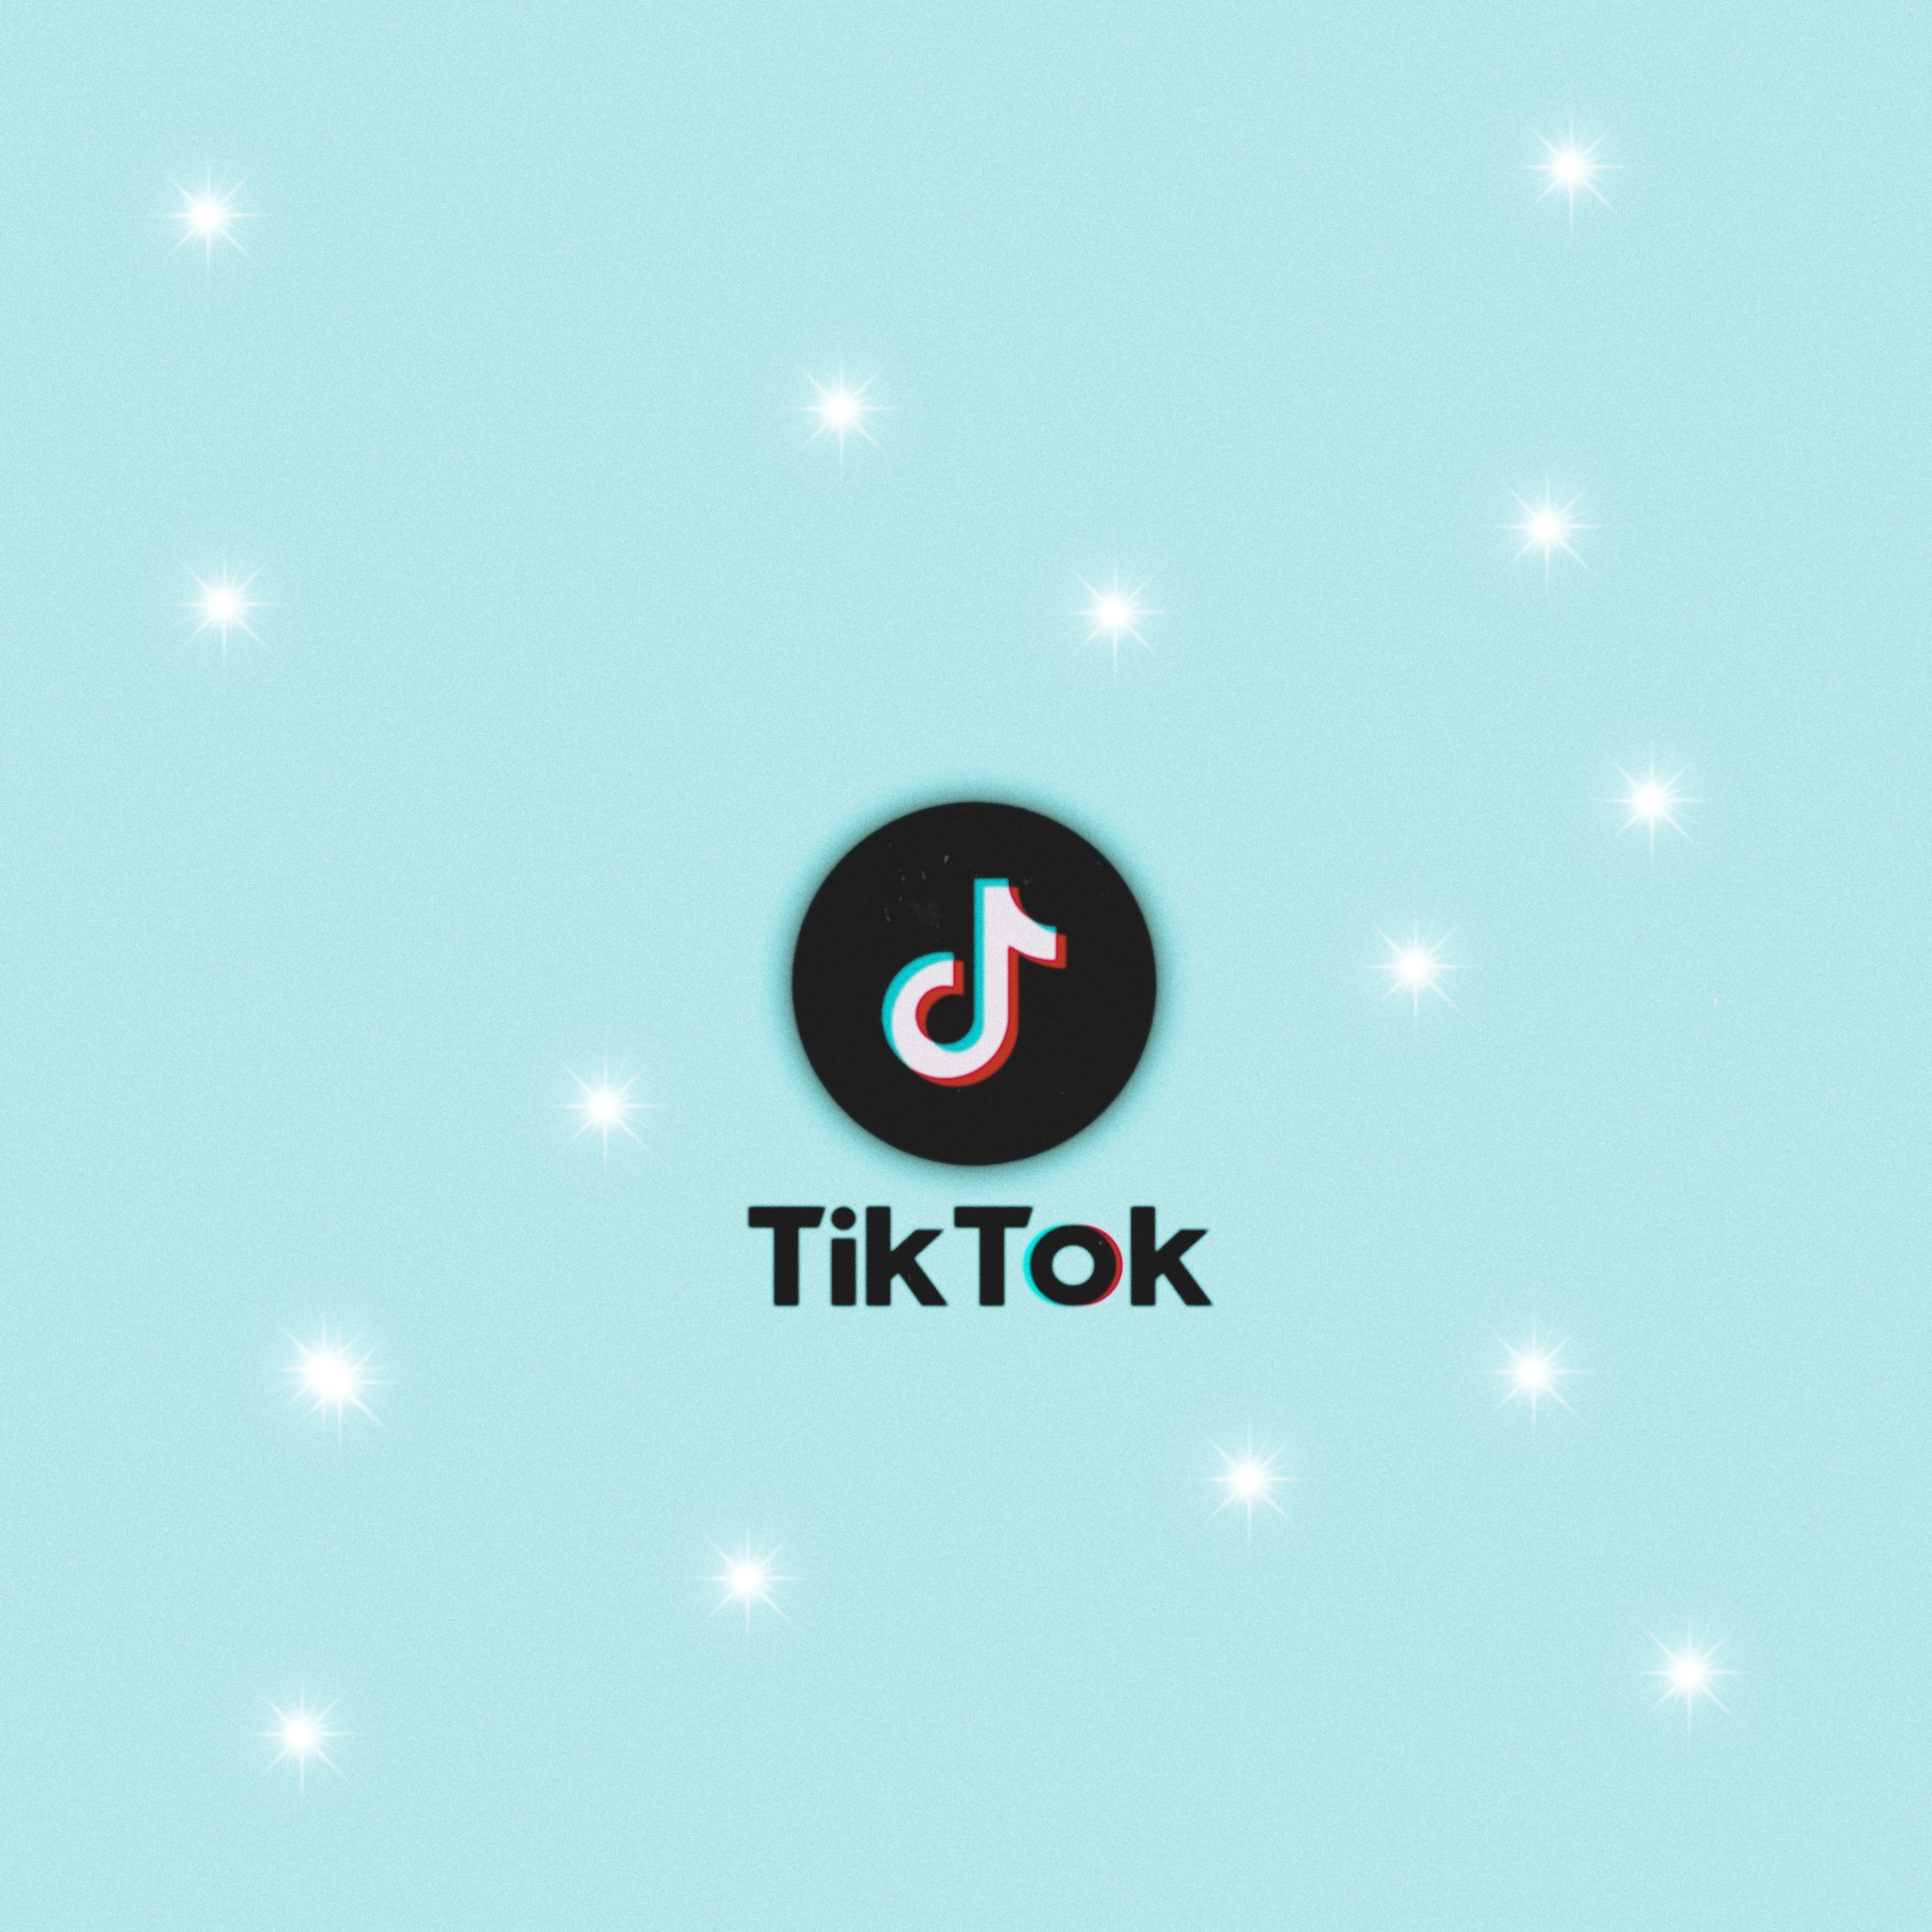 Tiktok App Icon Background Image By Wallpapers